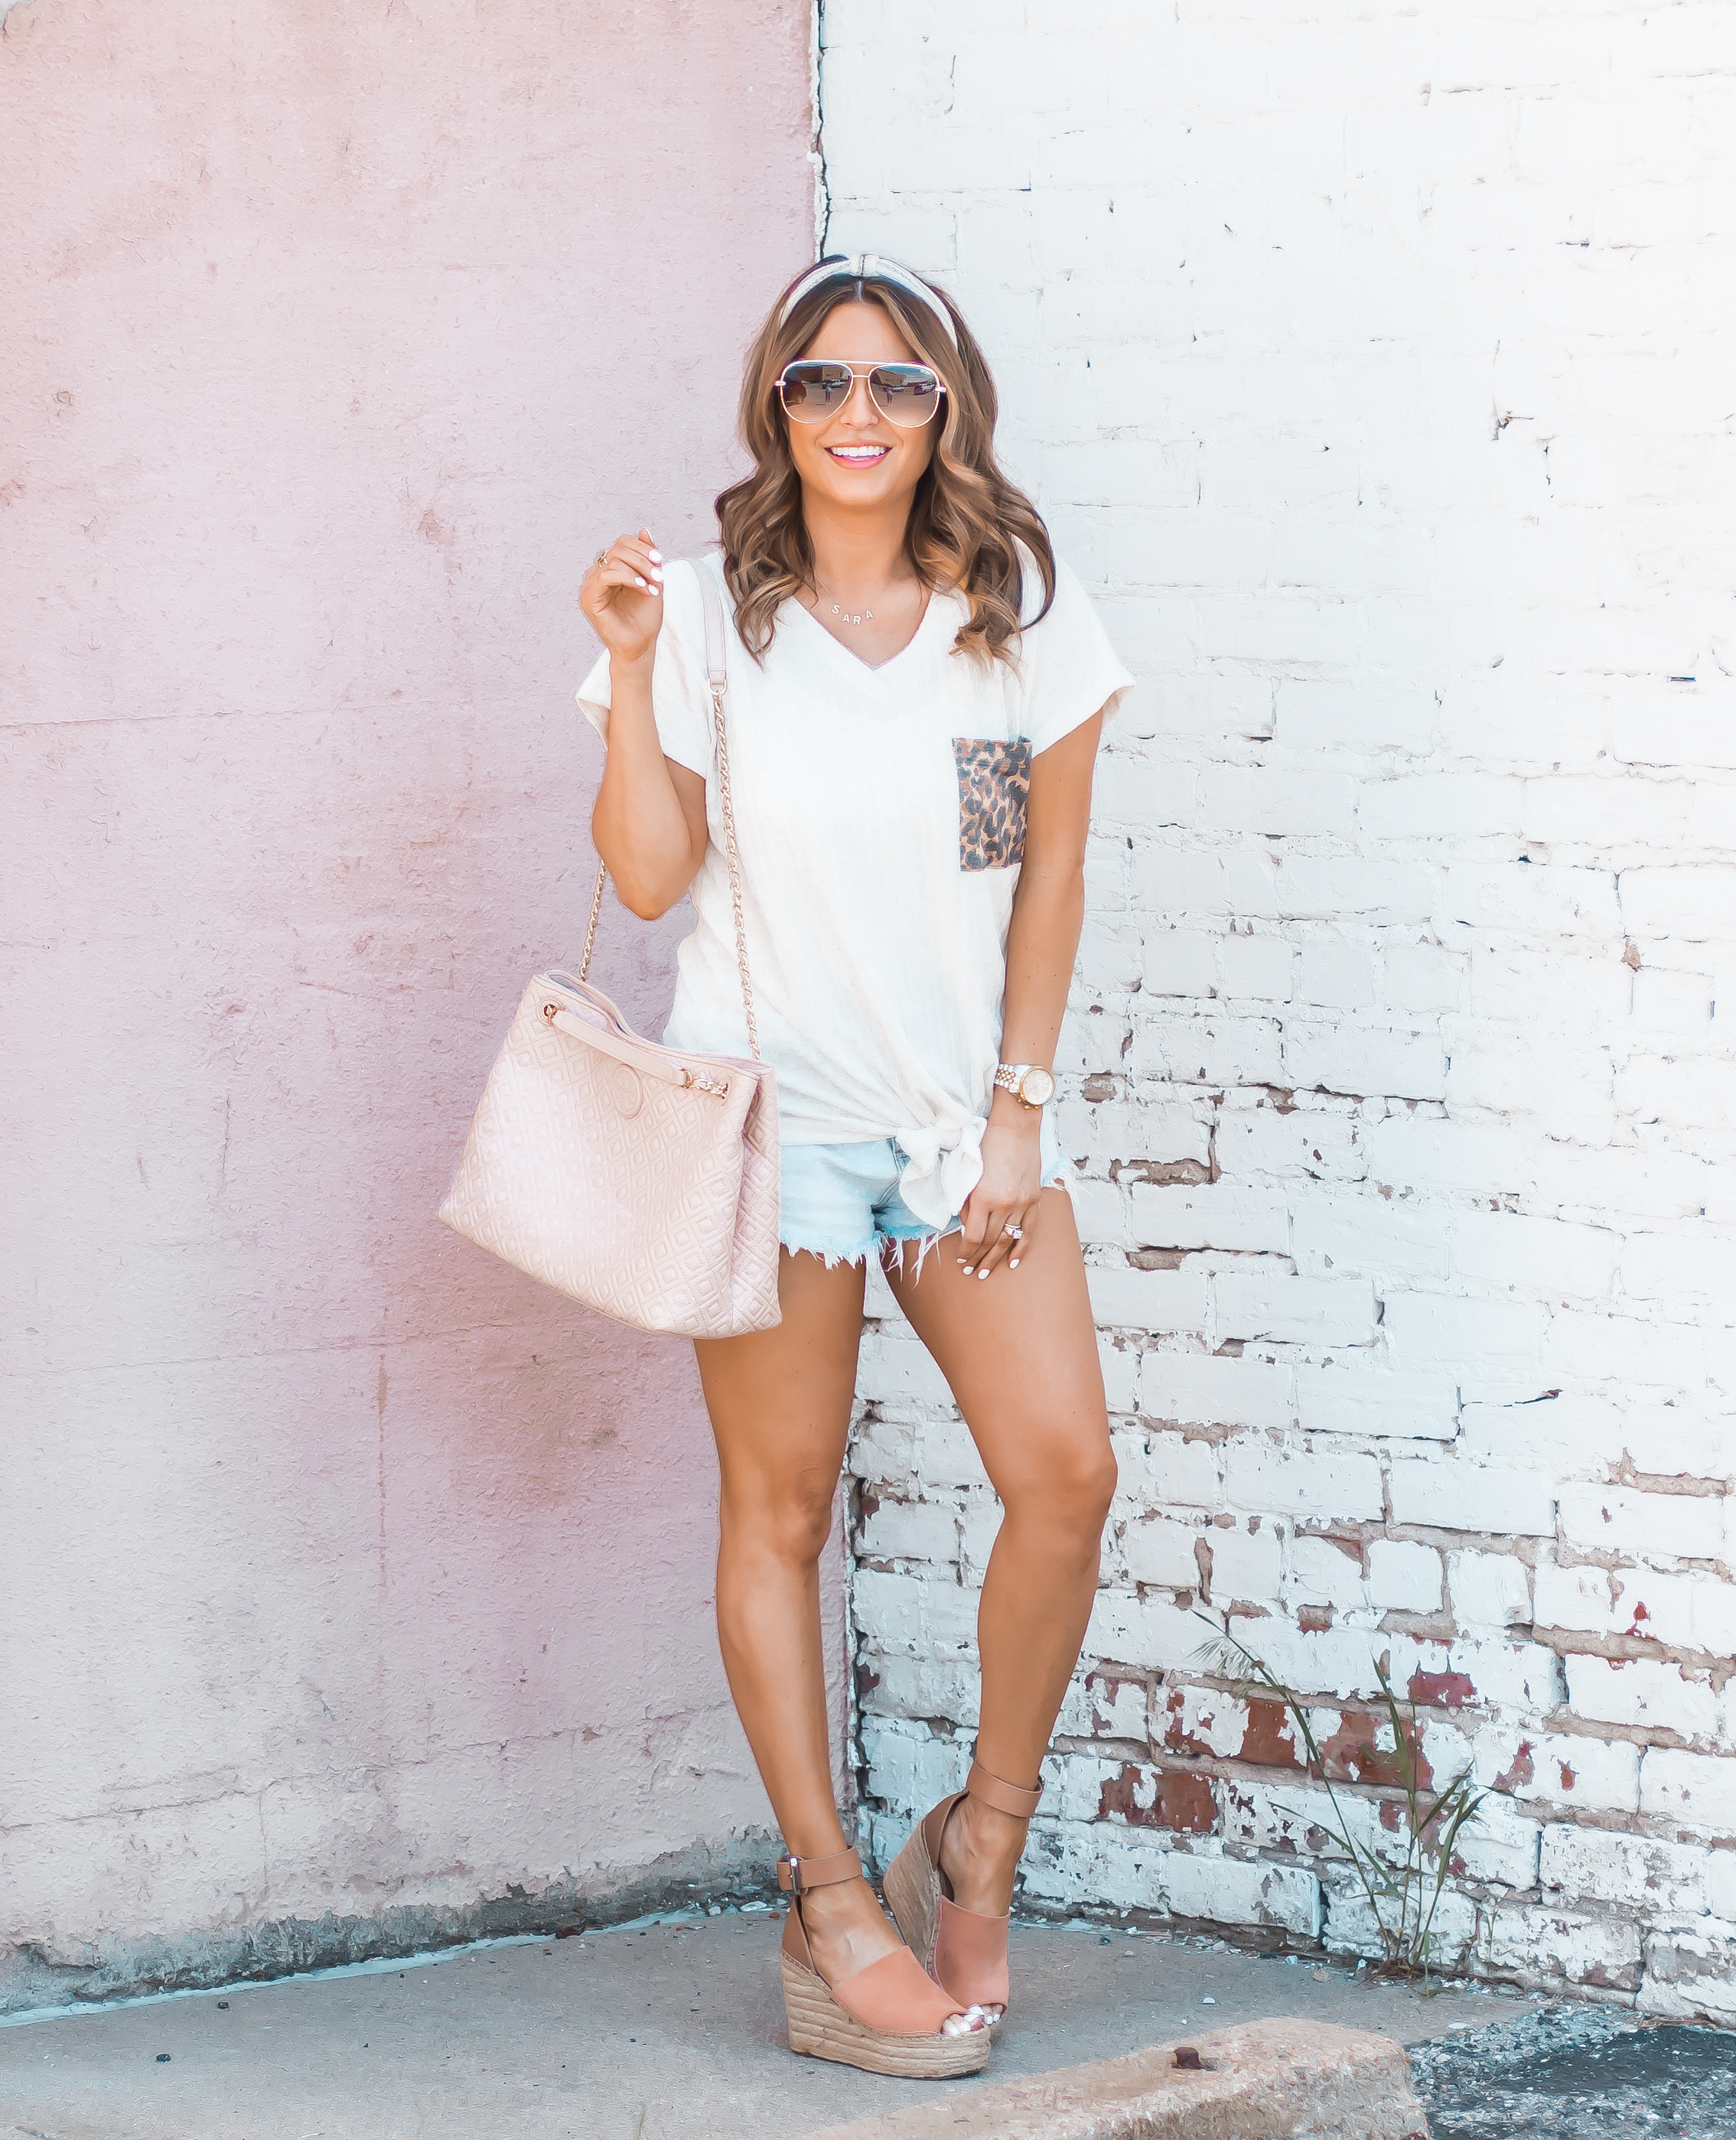 Women's Fashion-Summer Fashion-Summer Outfit Inspiration-Sabby Style-Omaha Blogger-Leopard Pocket Top-The Style Bar Boutique-Cutoff Shorts-Espadrille Wedges-Marc Fisher Wedges-Tory Burch Fleming-Quay Sunglasses-Headband Trend-Omaha-Nebraska-Midwest Blogger-12